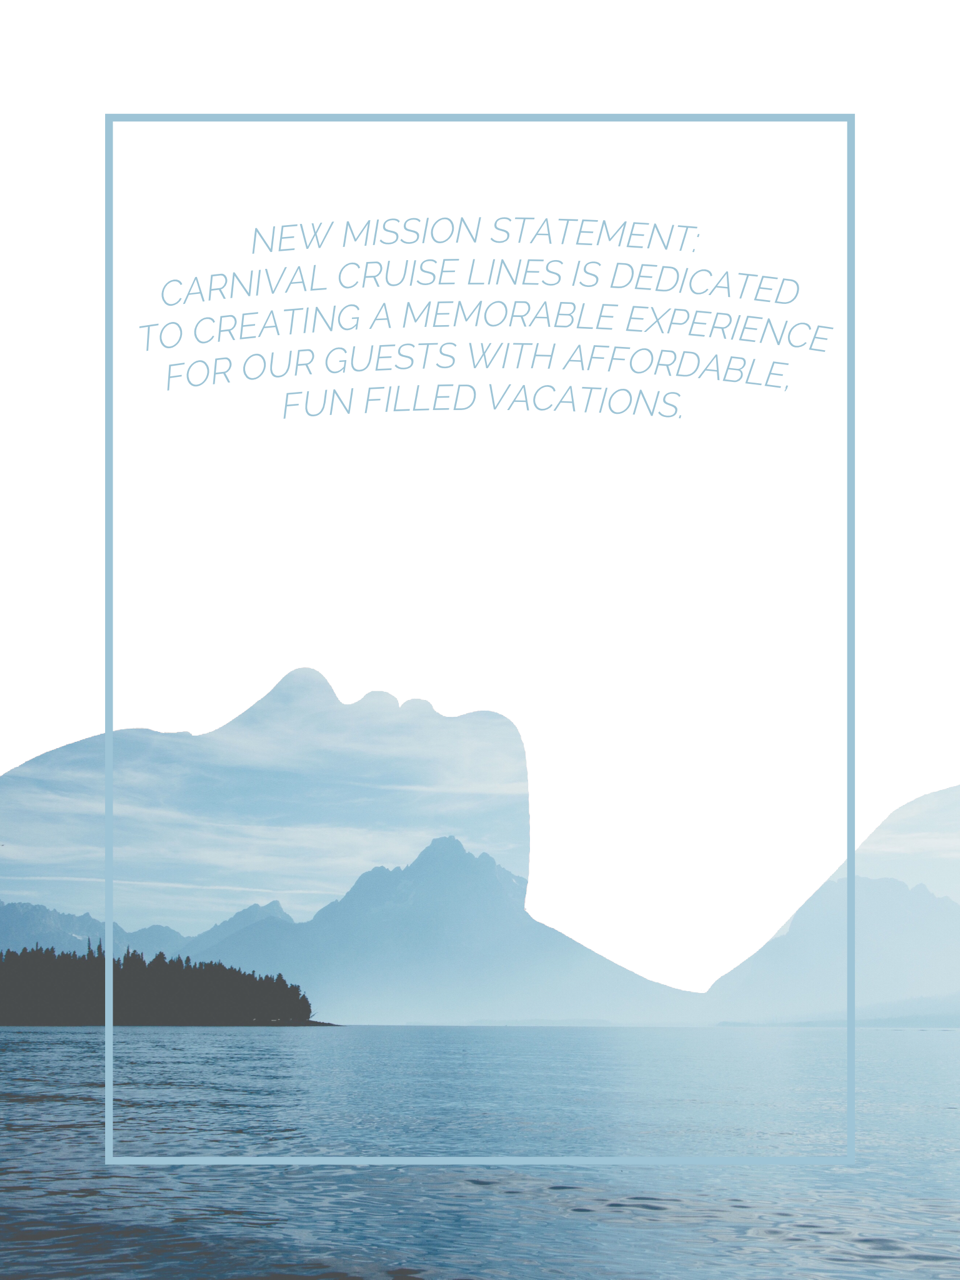 Current Mission Statement - To consistently deliver fun, memorable and affordable vacations at a great value.